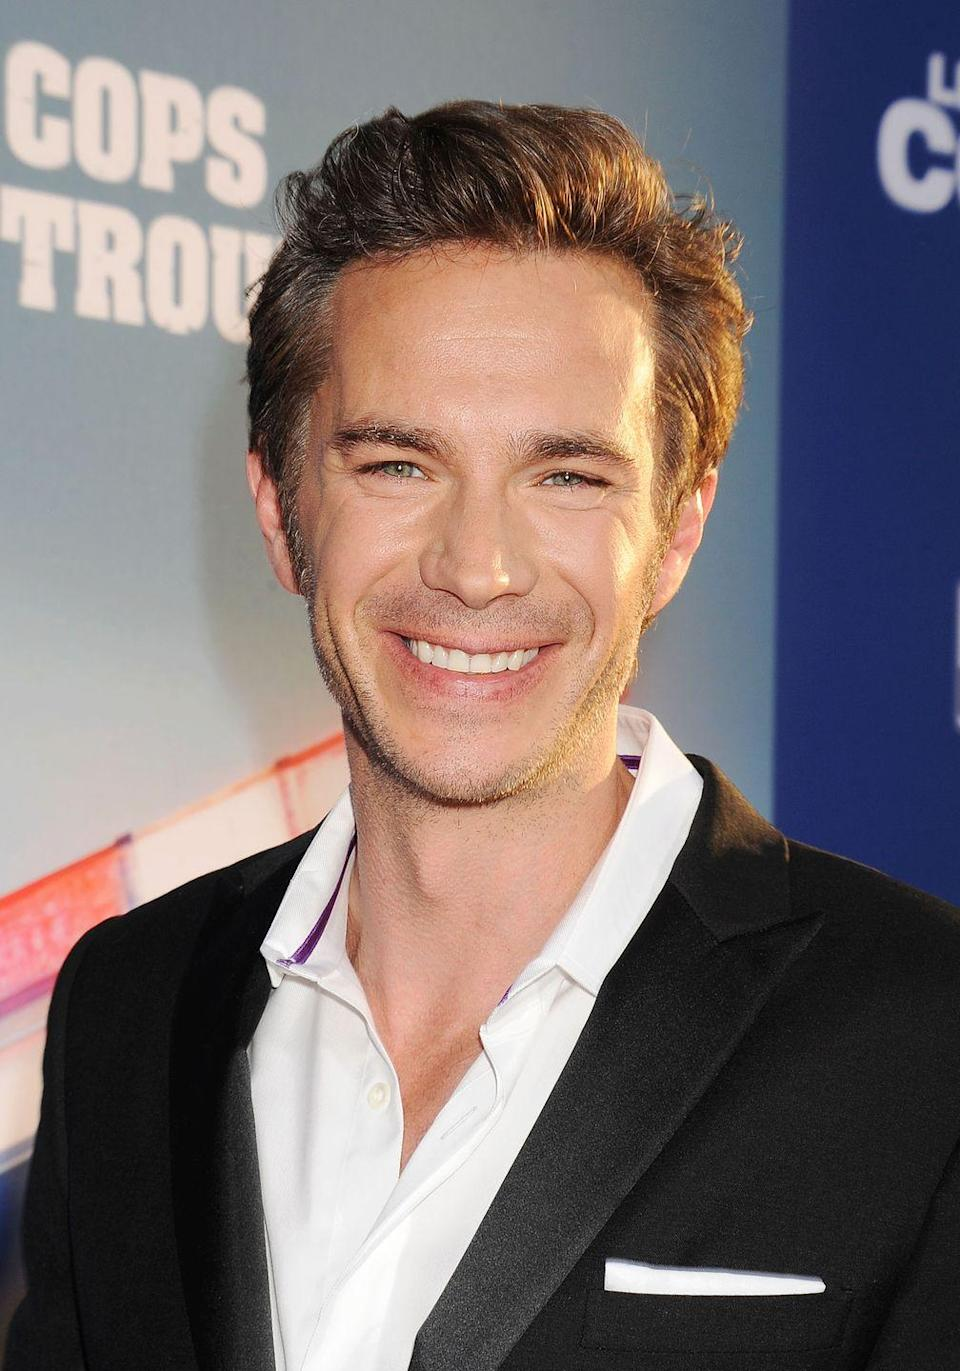 "<p>You've probably seen him in <em>Dunkirk</em> or <em>Homeland</em>, but long before he was a successful actor, James D'Arcy worked at McDonald's. His experience was actually pretty scary. Someone pulled a gun on him while he was working the register one night, he told <a href=""https://metro.co.uk/2012/01/18/james-darcy-someone-pointed-a-gun-at-me-when-i-worked-at-mcdonalds-288919/"" rel=""nofollow noopener"" target=""_blank"" data-ylk=""slk:Metro"" class=""link rapid-noclick-resp""><em>Metro</em></a>. He stopped working there shortly afterwards.</p>"